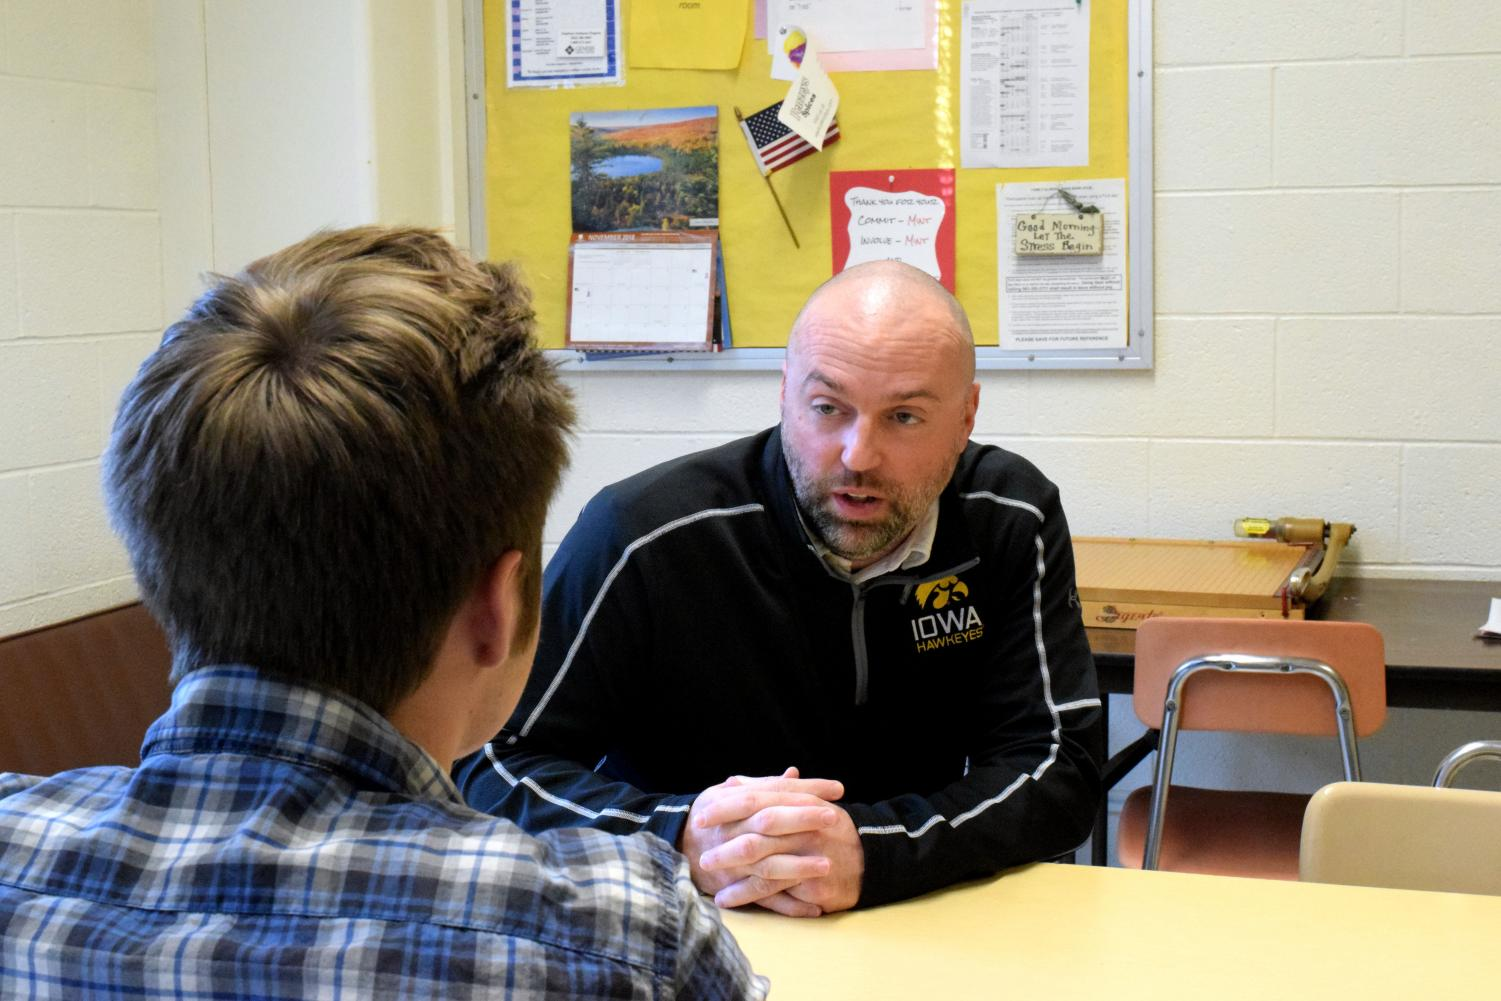 Shiltz poses speaking to a student, handling a plausible situation in which he must calm a boy or girl down in order to have a serious discussion to change the behavior which must be fixed.